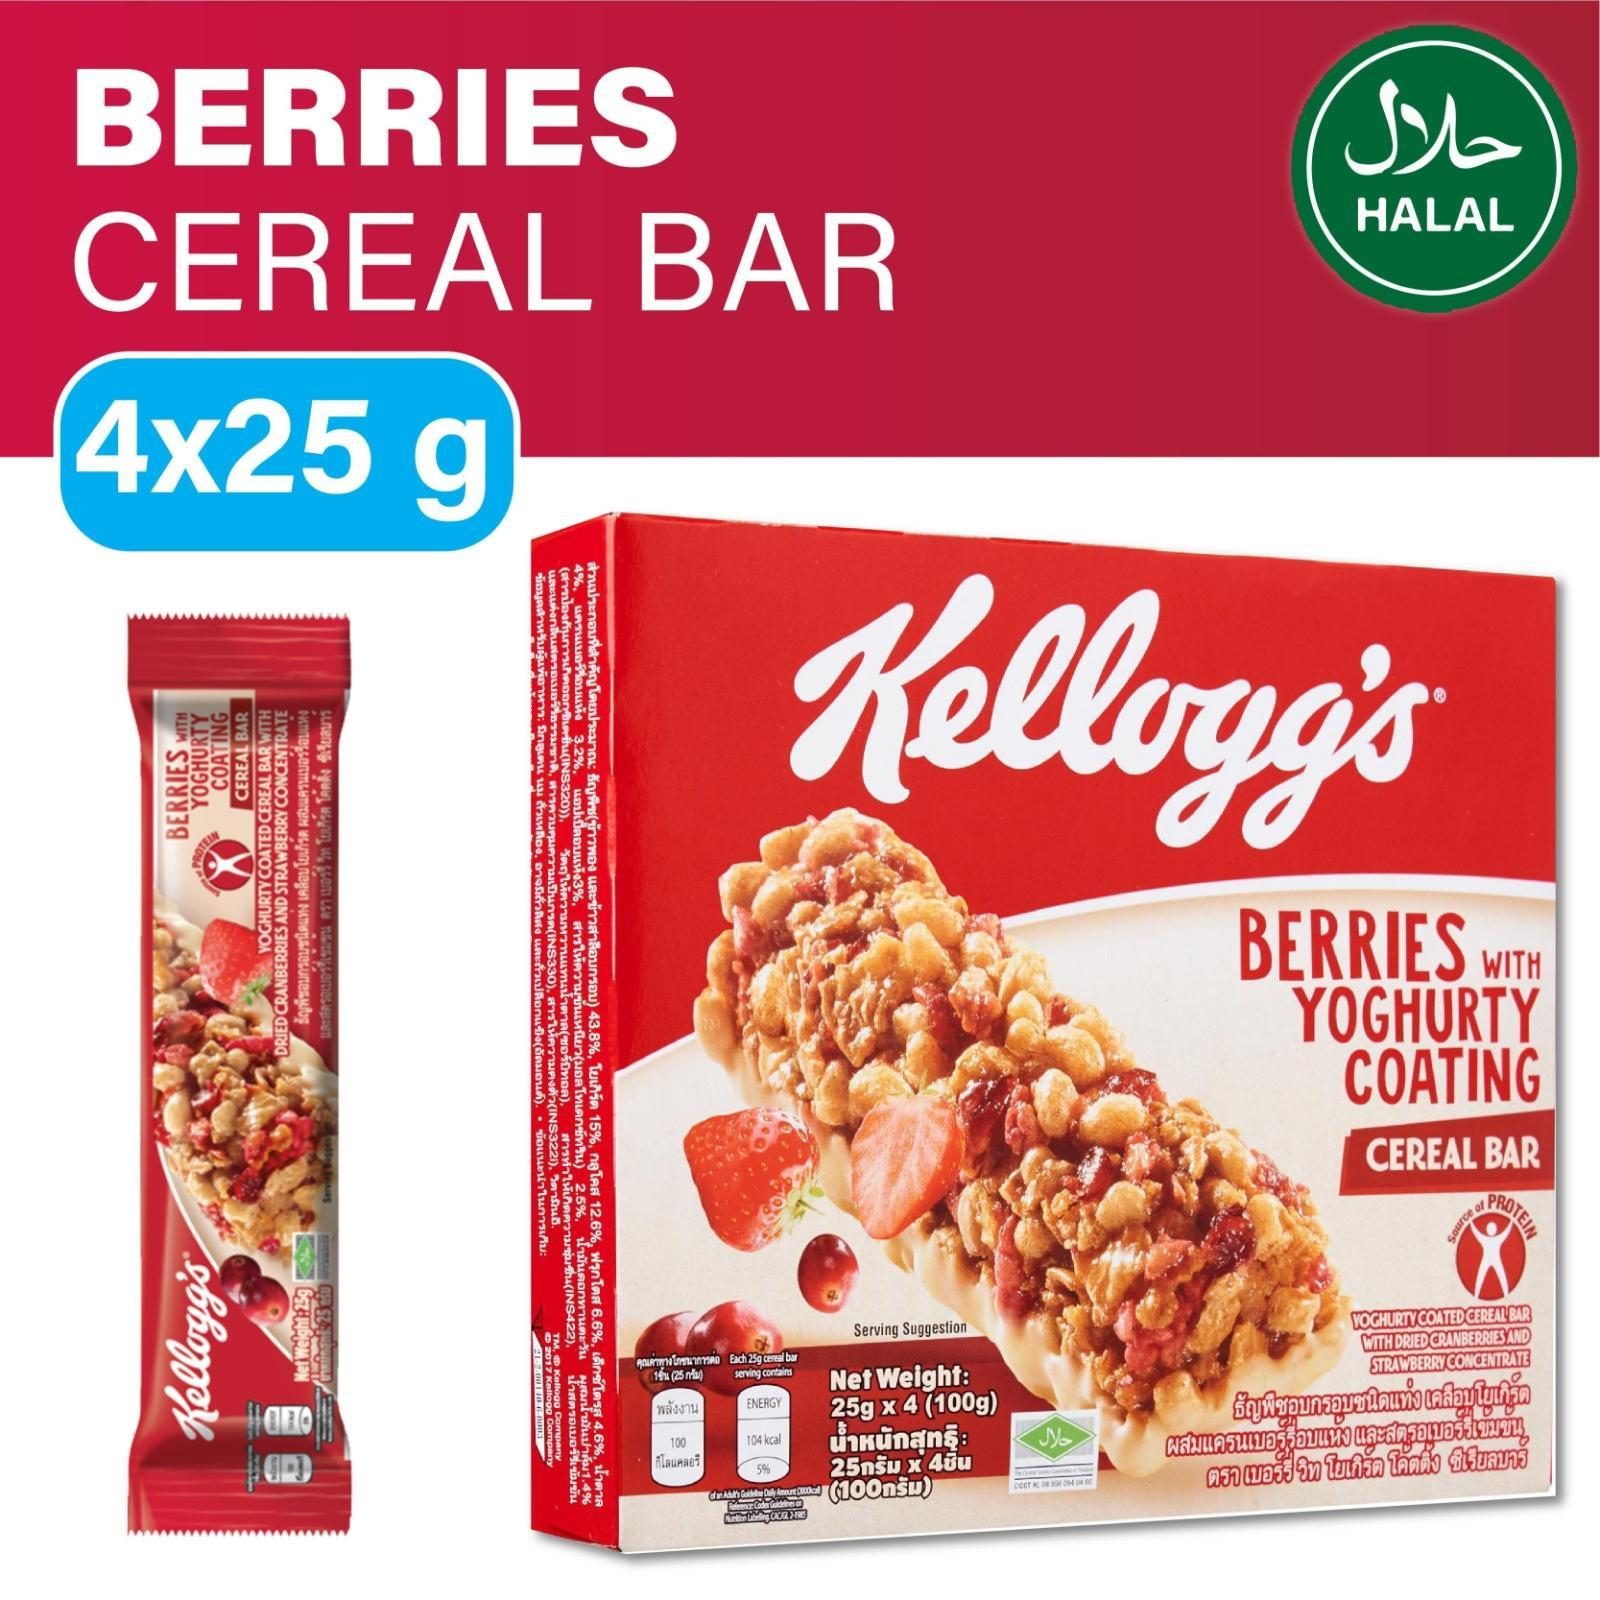 Kellogg's Berries With Yoghurty Coating Cereal Bar Pack